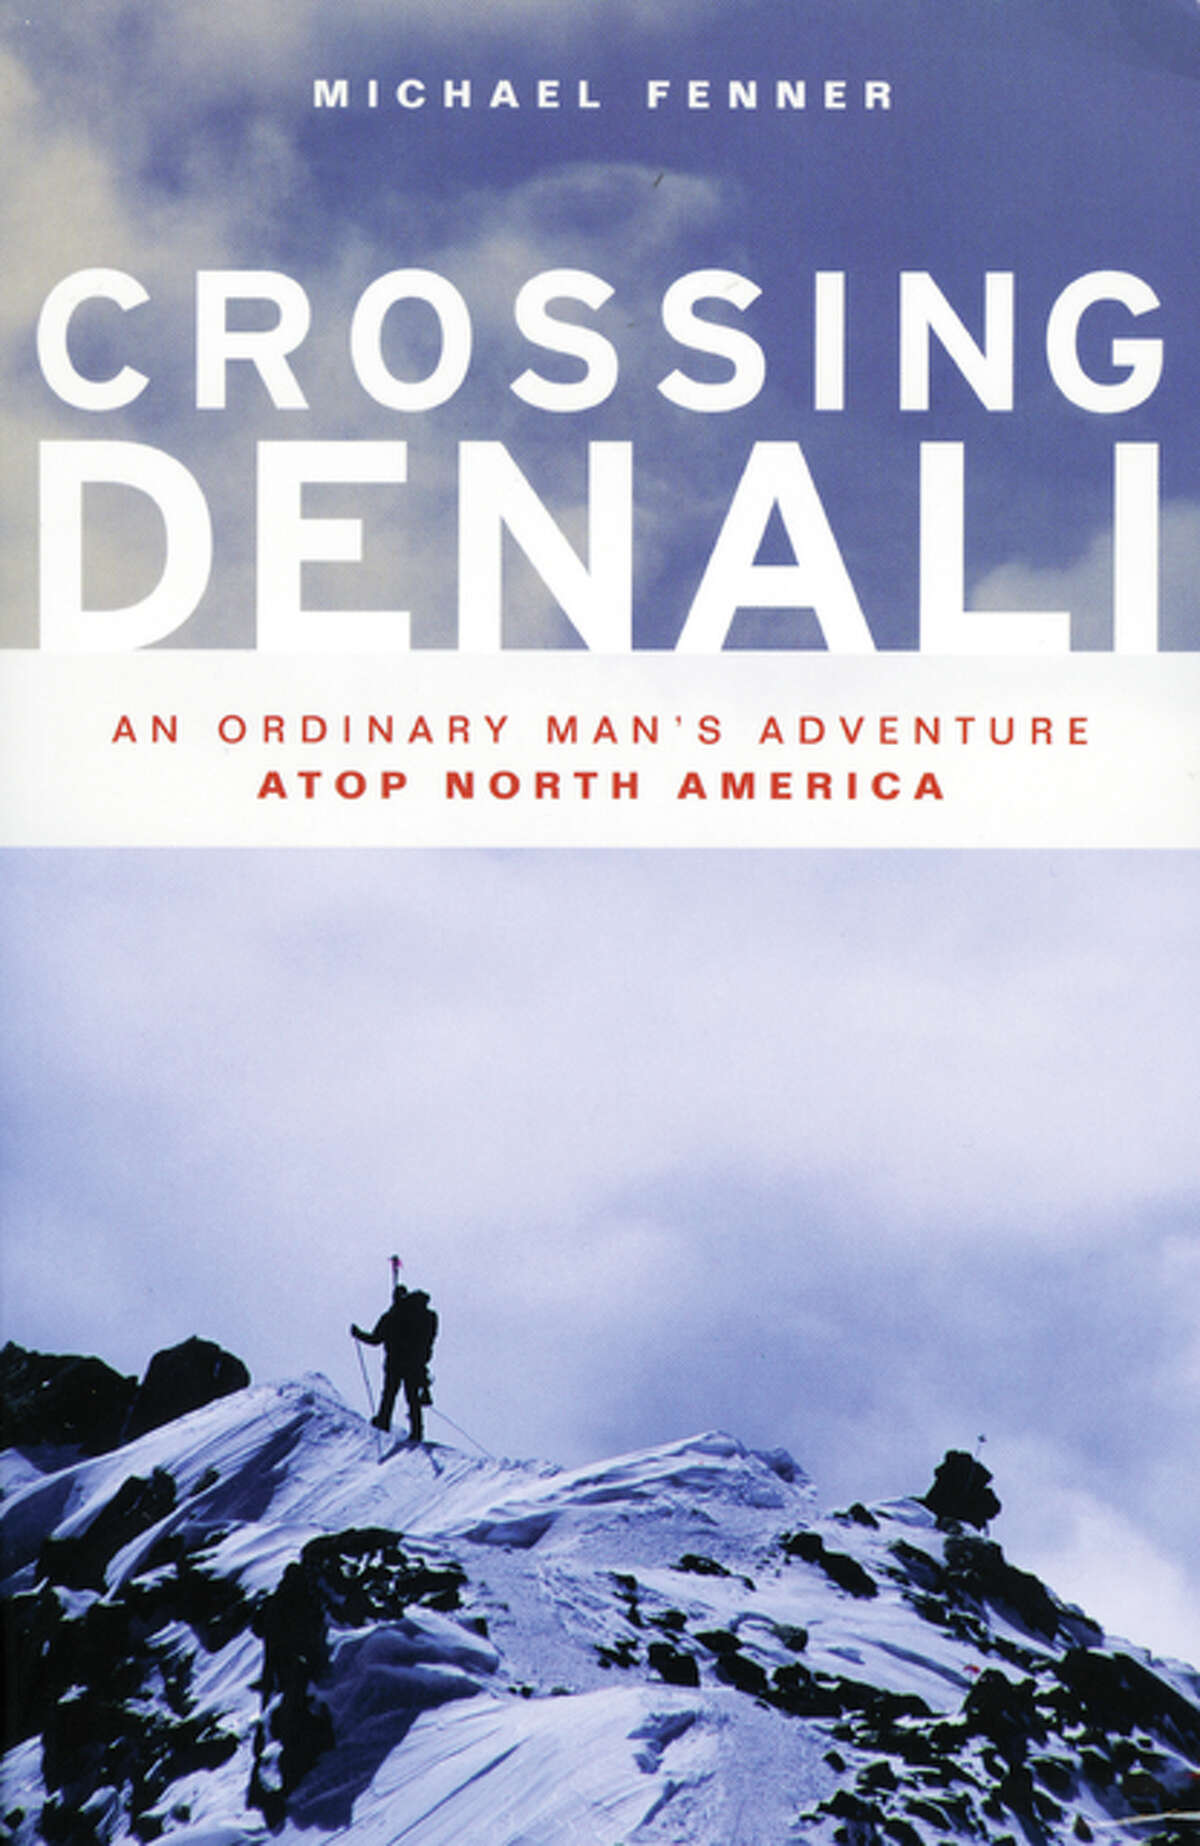 """Michael Fenner of Jacksonville will sign copies of his new book, """"Crossing Denali,"""" from 5 to 7 p.m. Friday at Our Town Books at 64 E. Central Park. """"Crossing Denali"""" is available at Our Town Books and through amazon.com."""